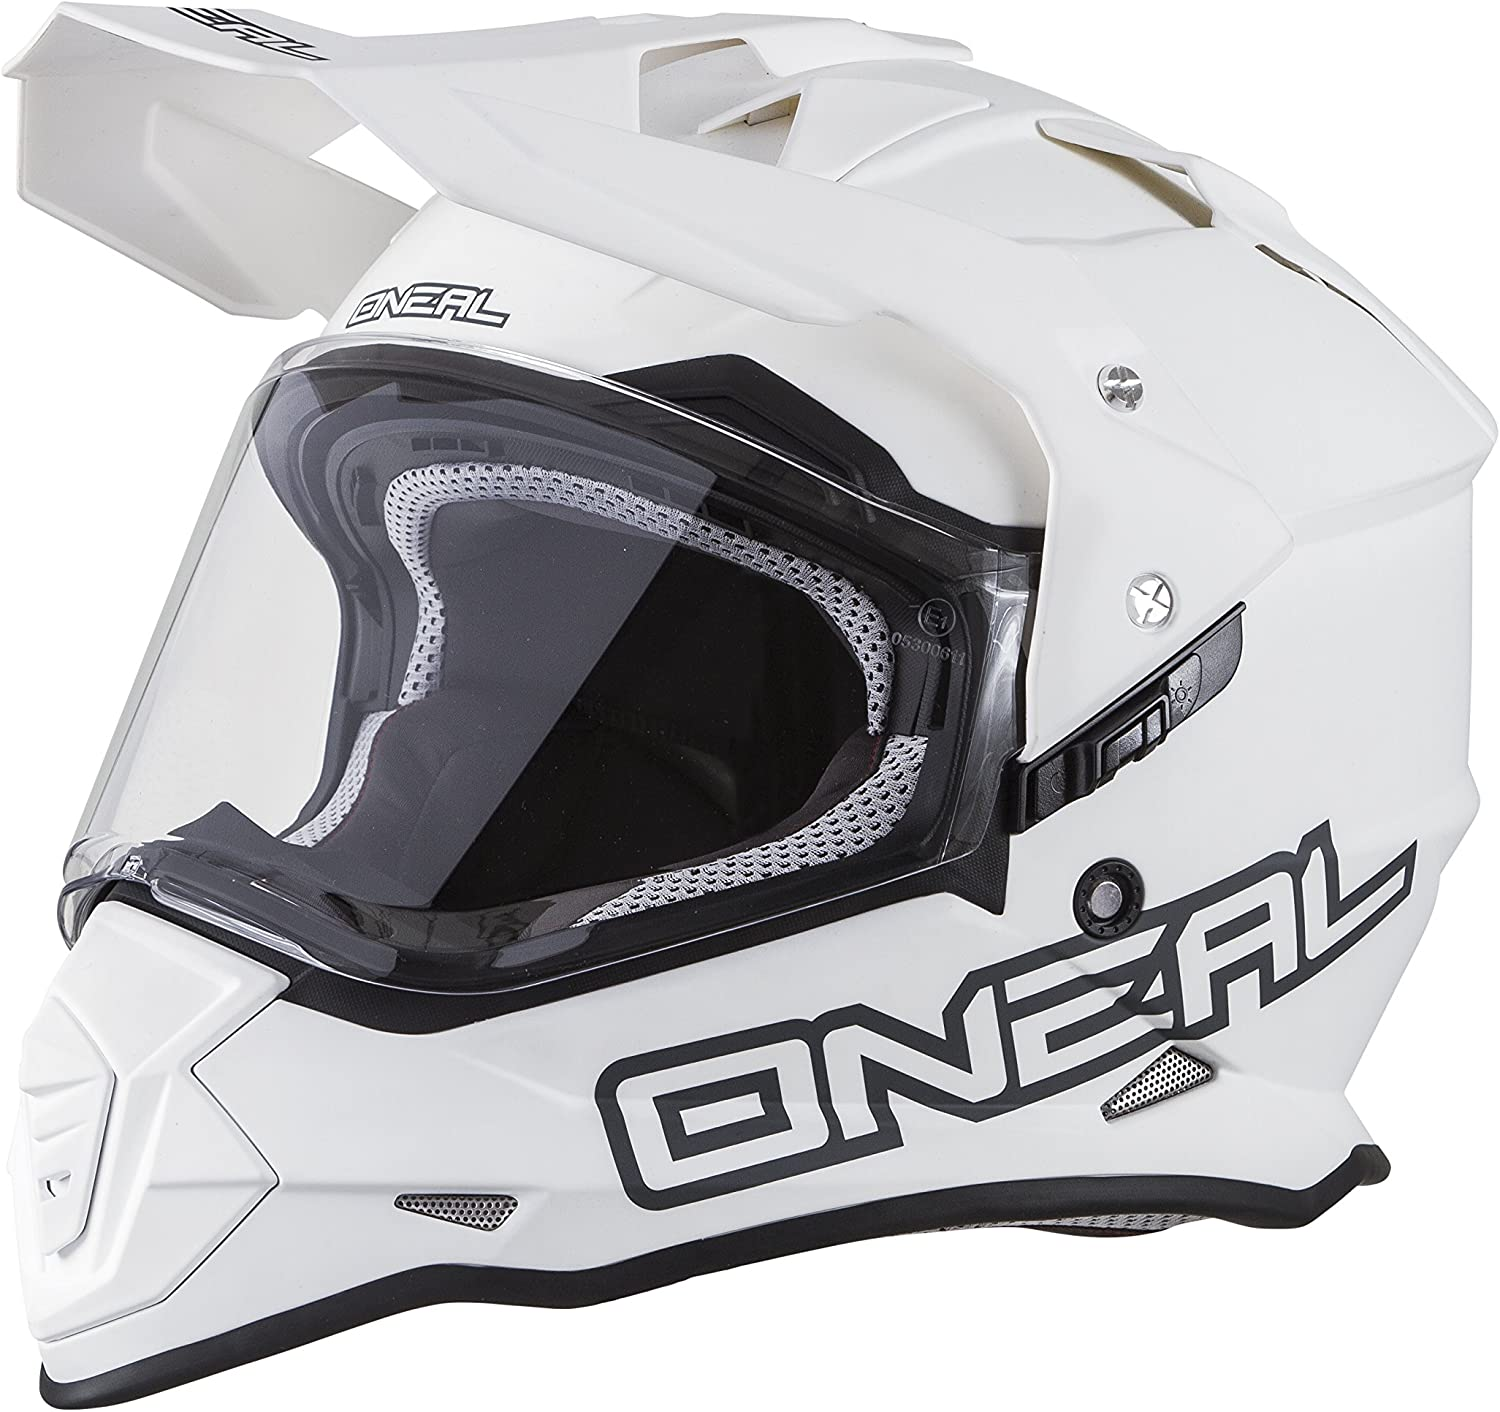 O'NEAL Full-Face Helmet